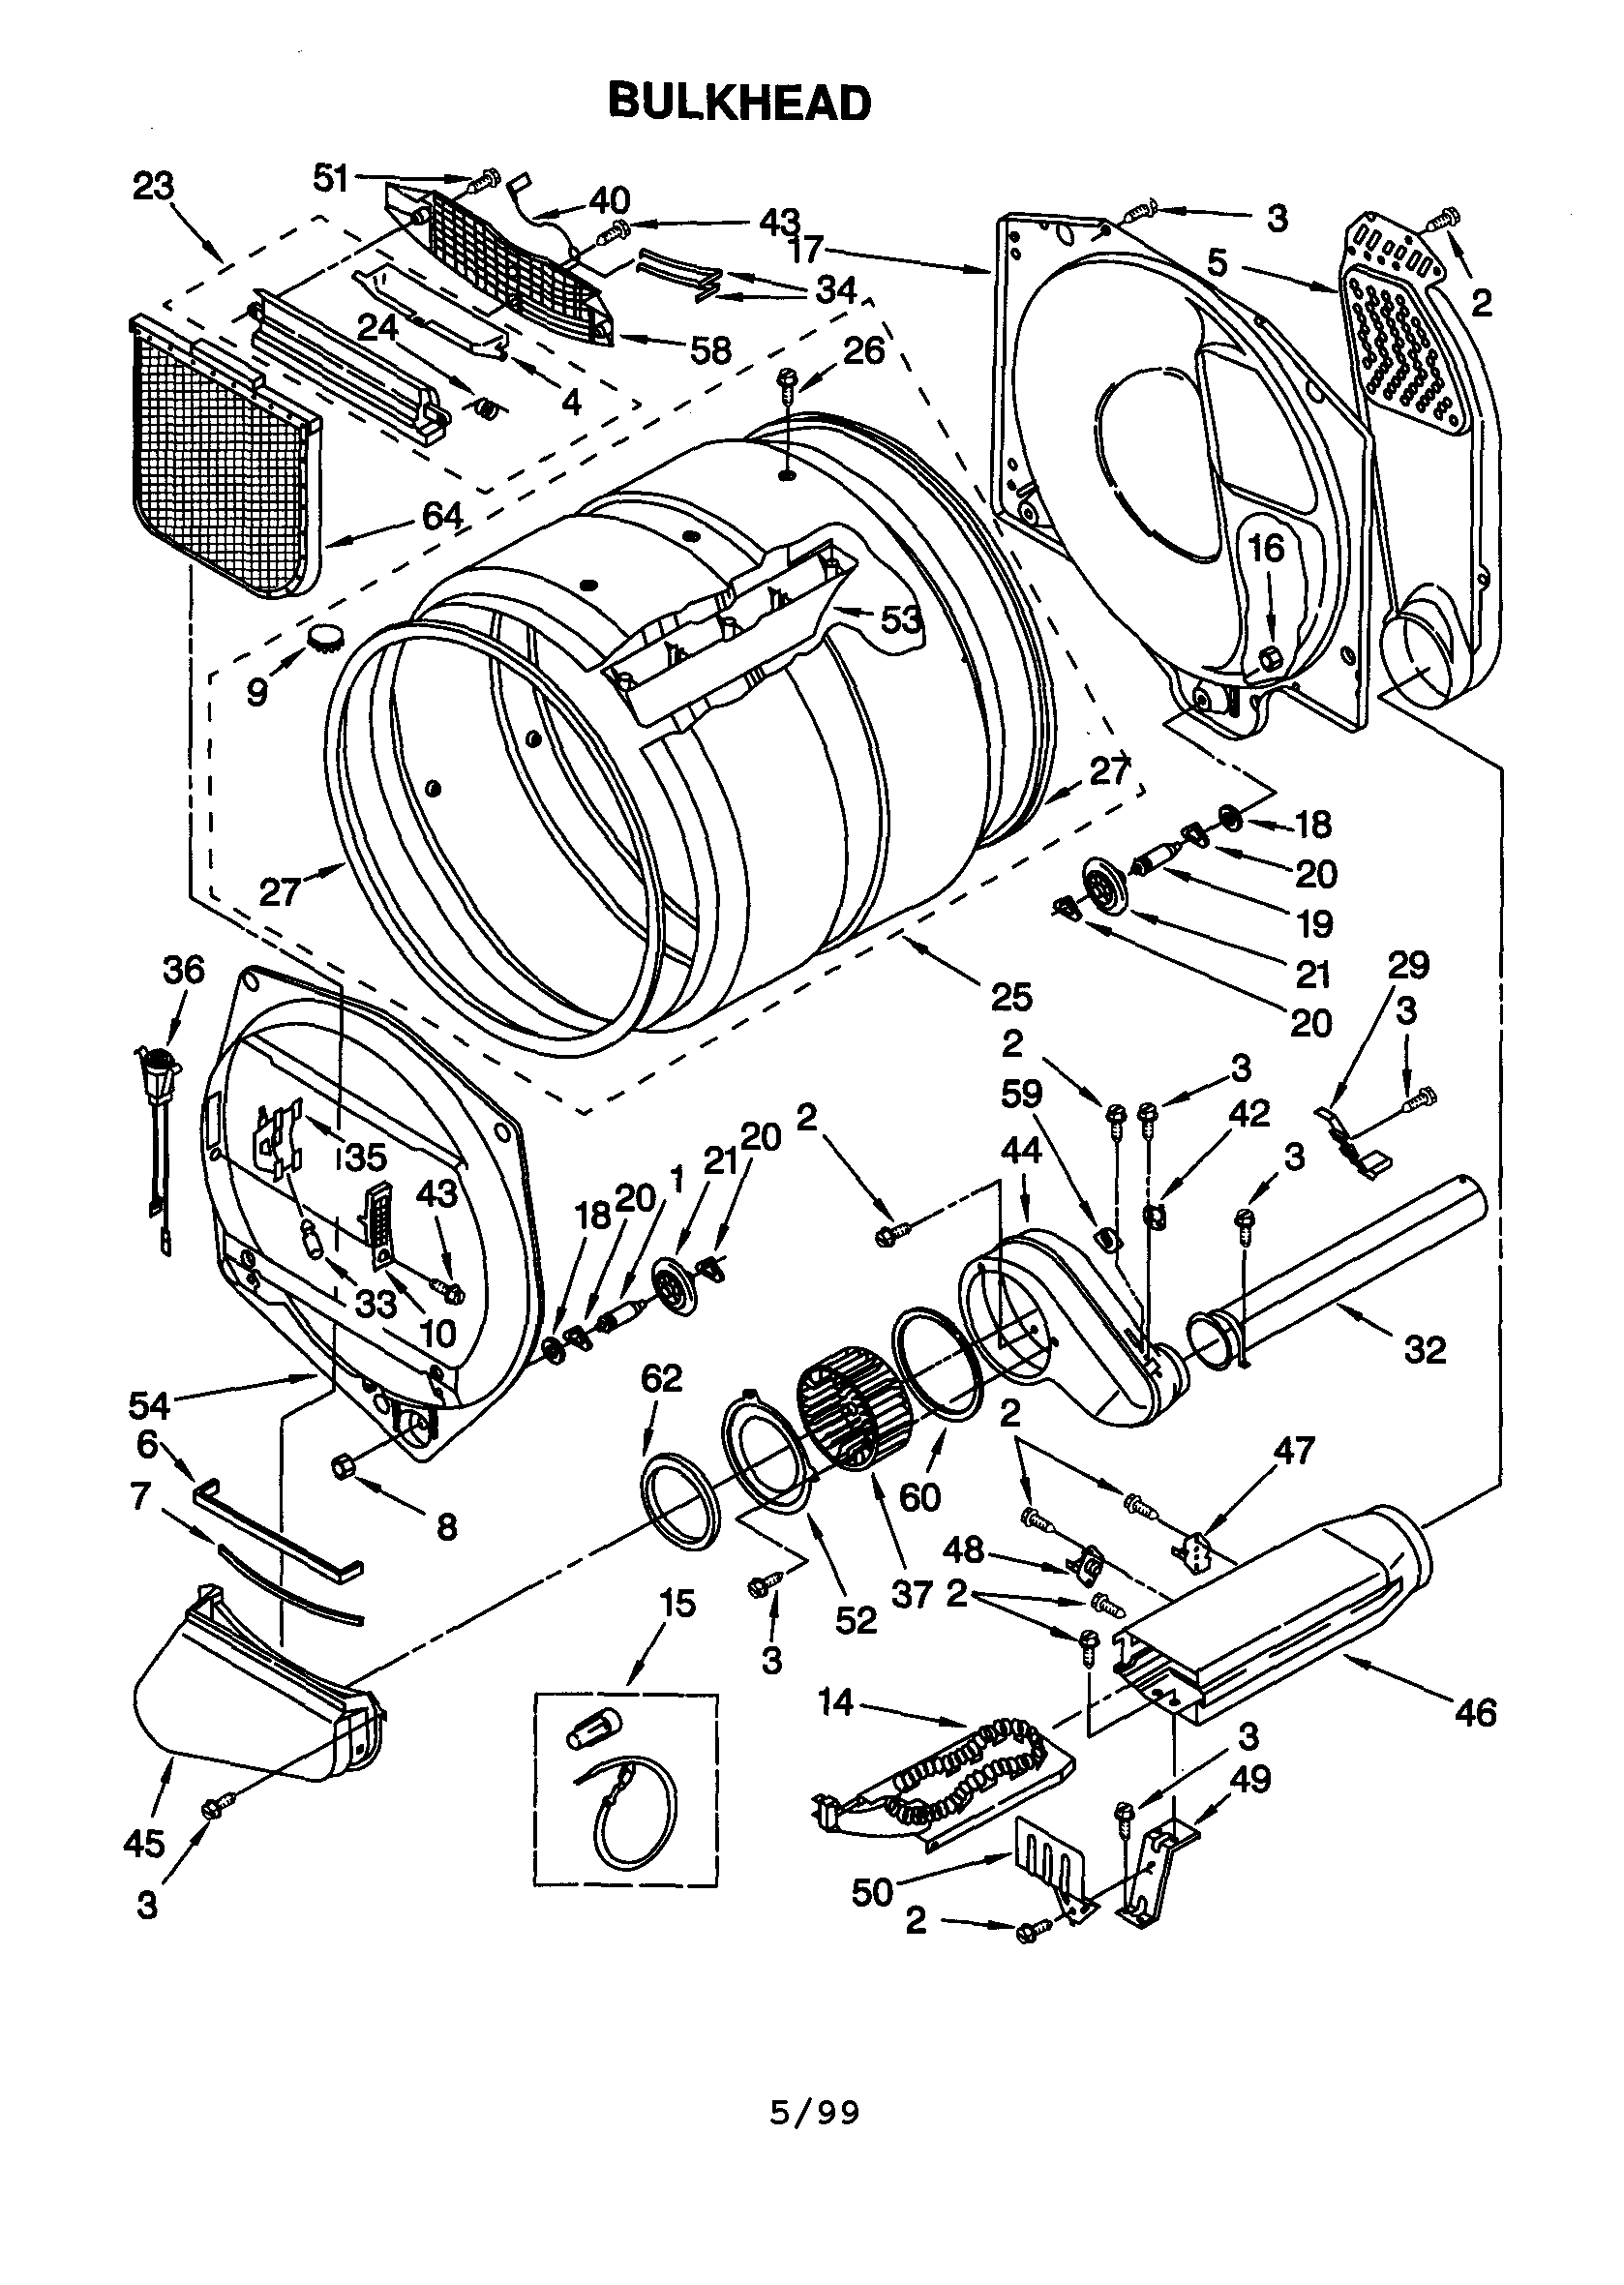 Kenmore Electric Dryer Diagram - Wiring Diagrams Value on